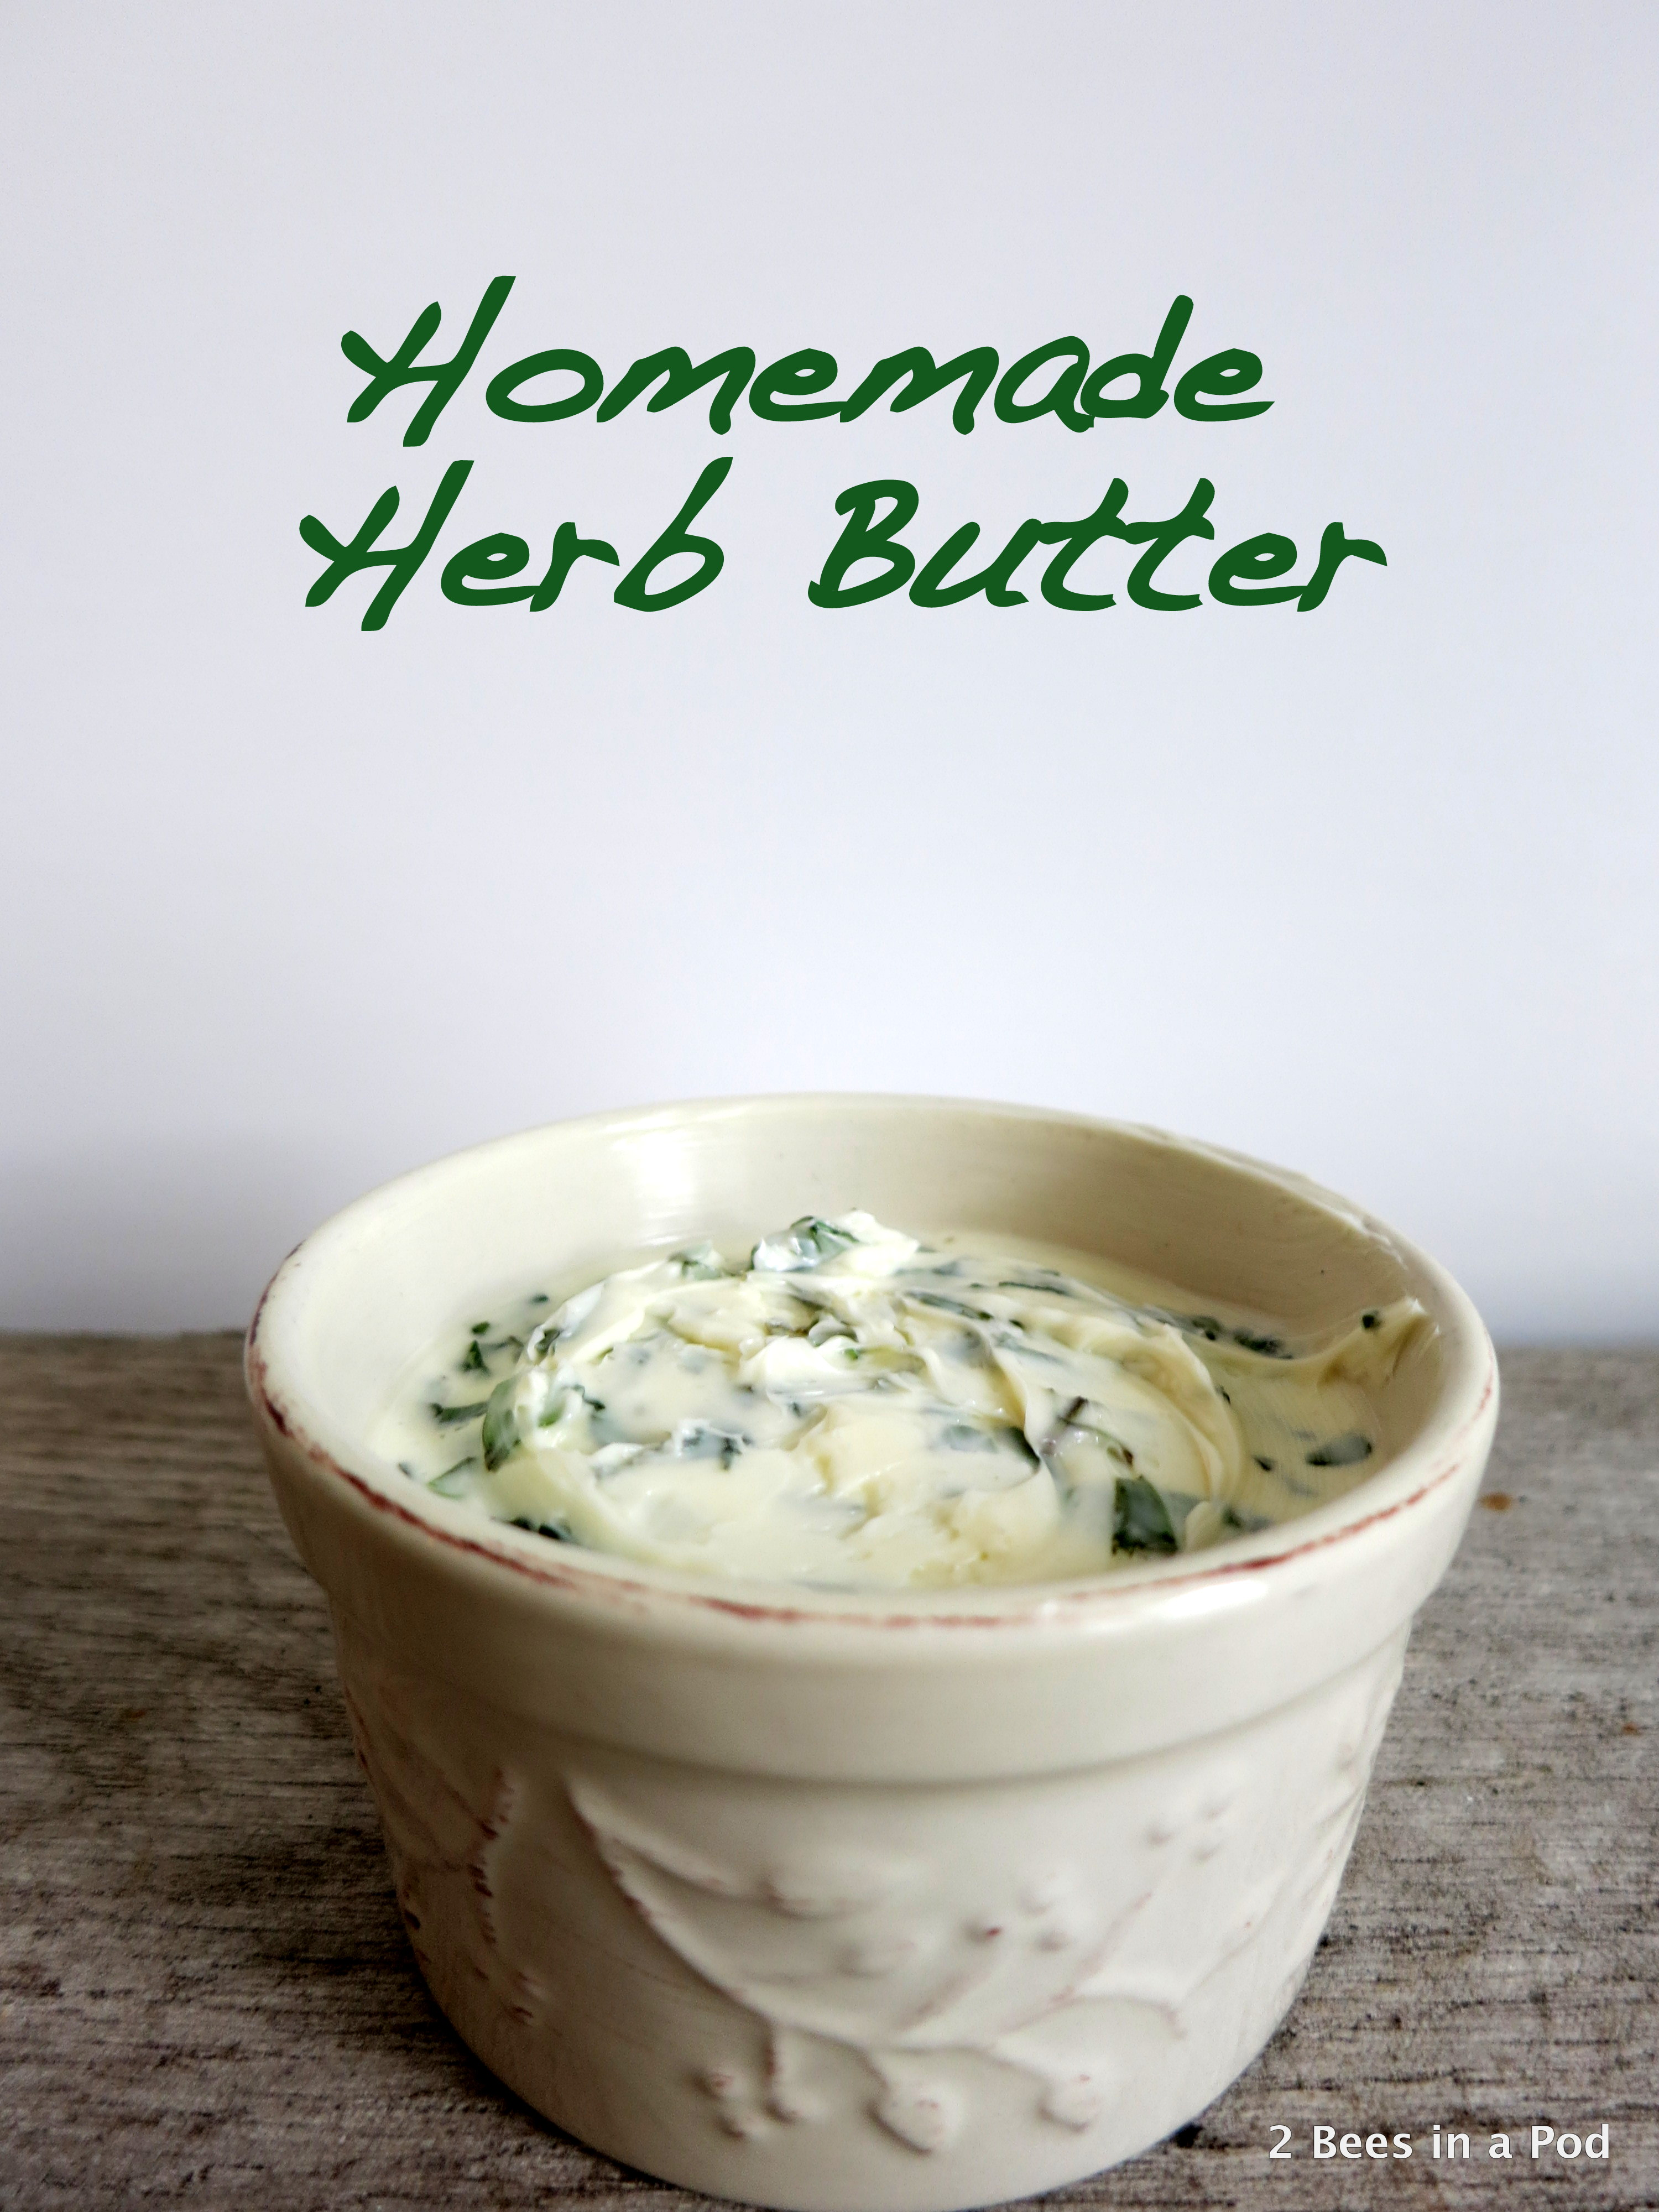 Homemade Herb Butter with Basil & Oregano